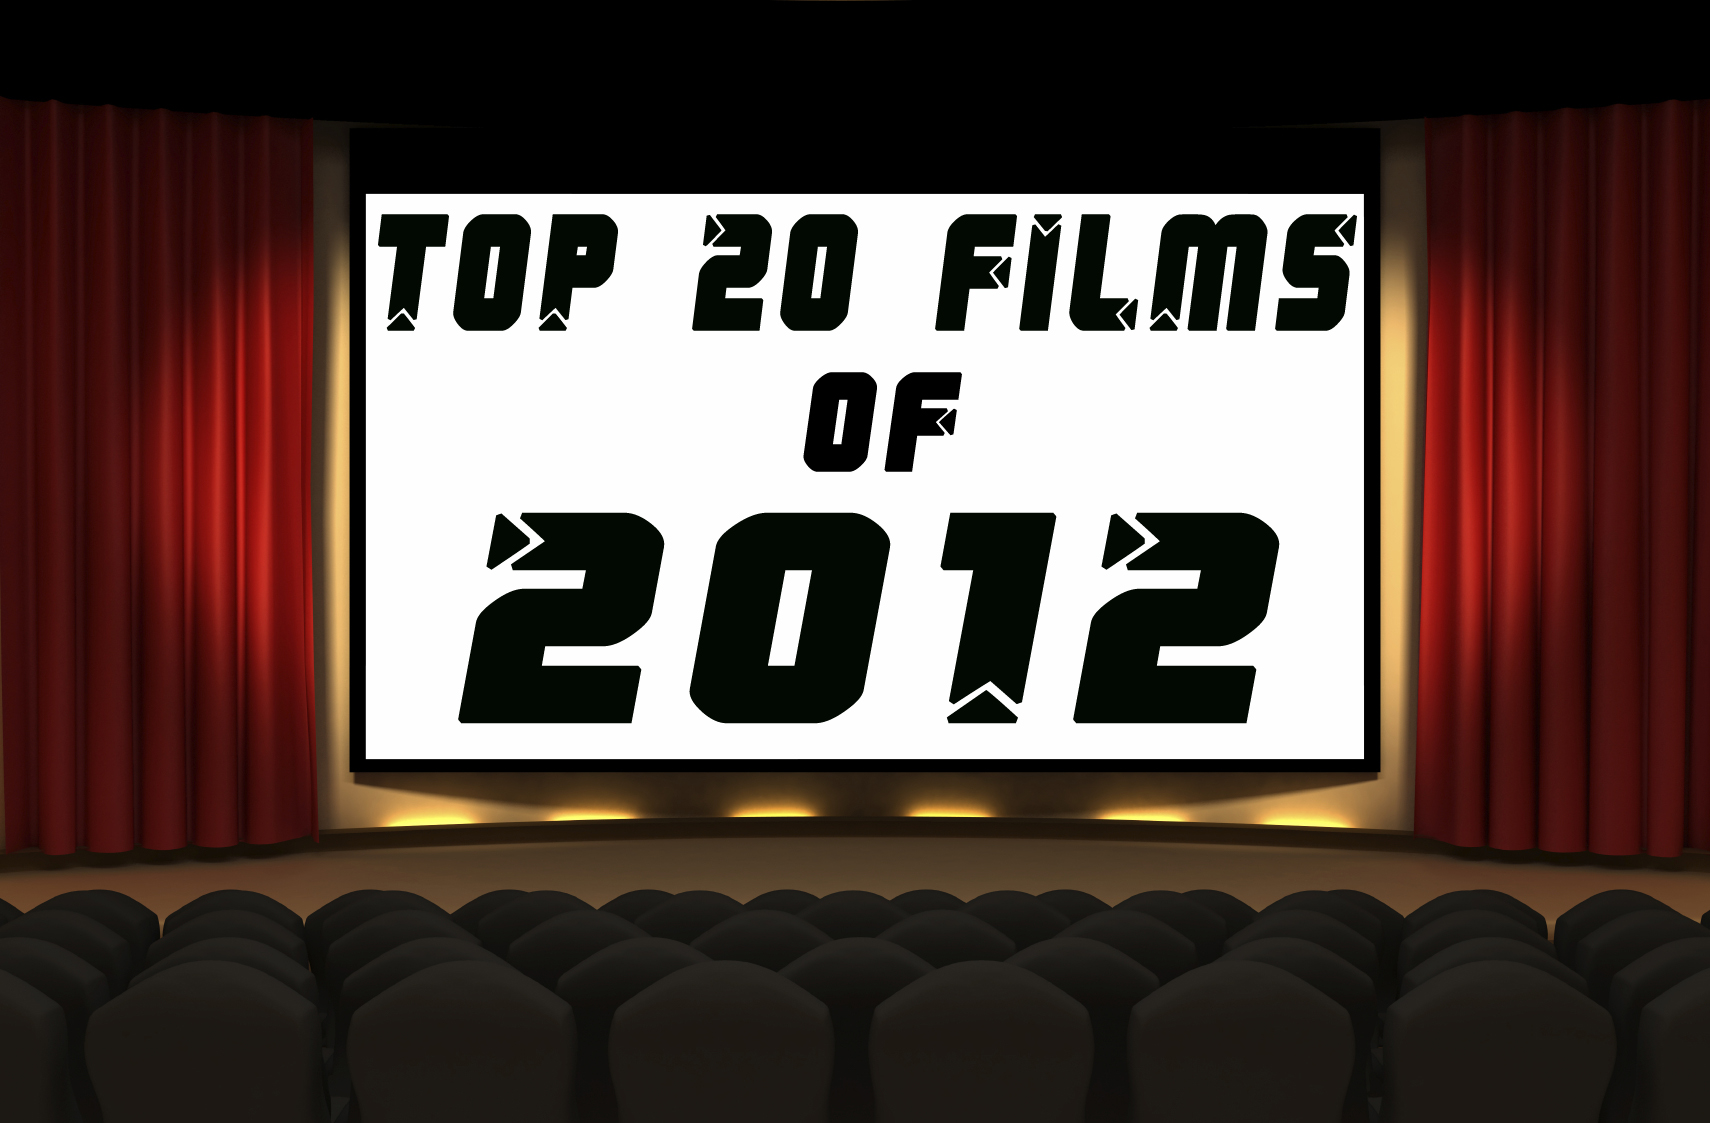 Thoughts On Film - Top 20 Films of 2012